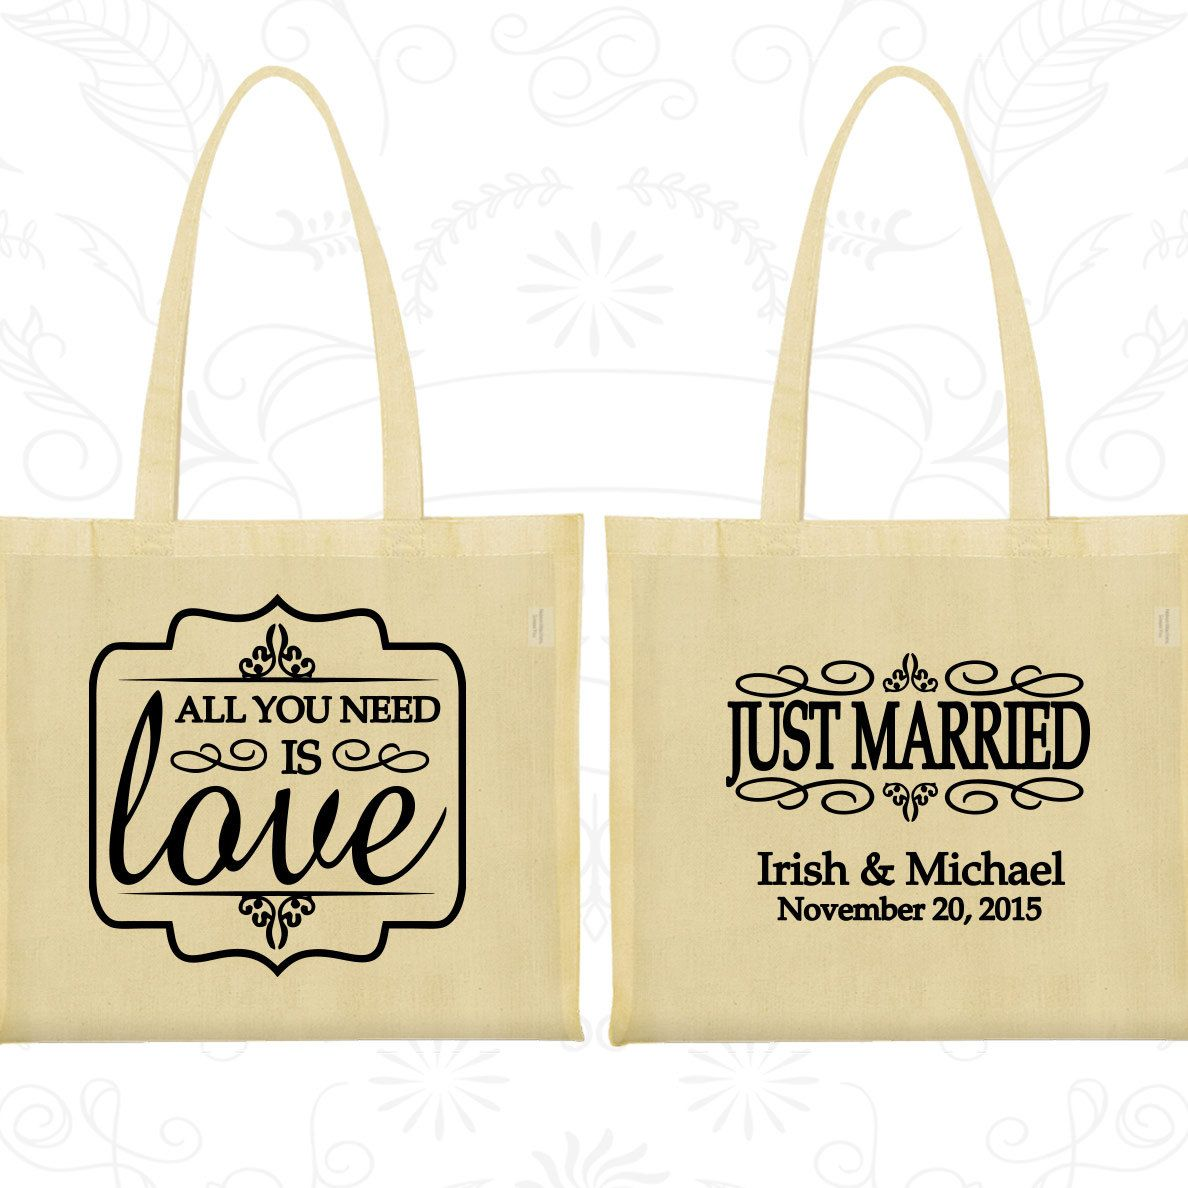 All you need is love Bags, Wedding Welcome Bags, Just Married Bags ...